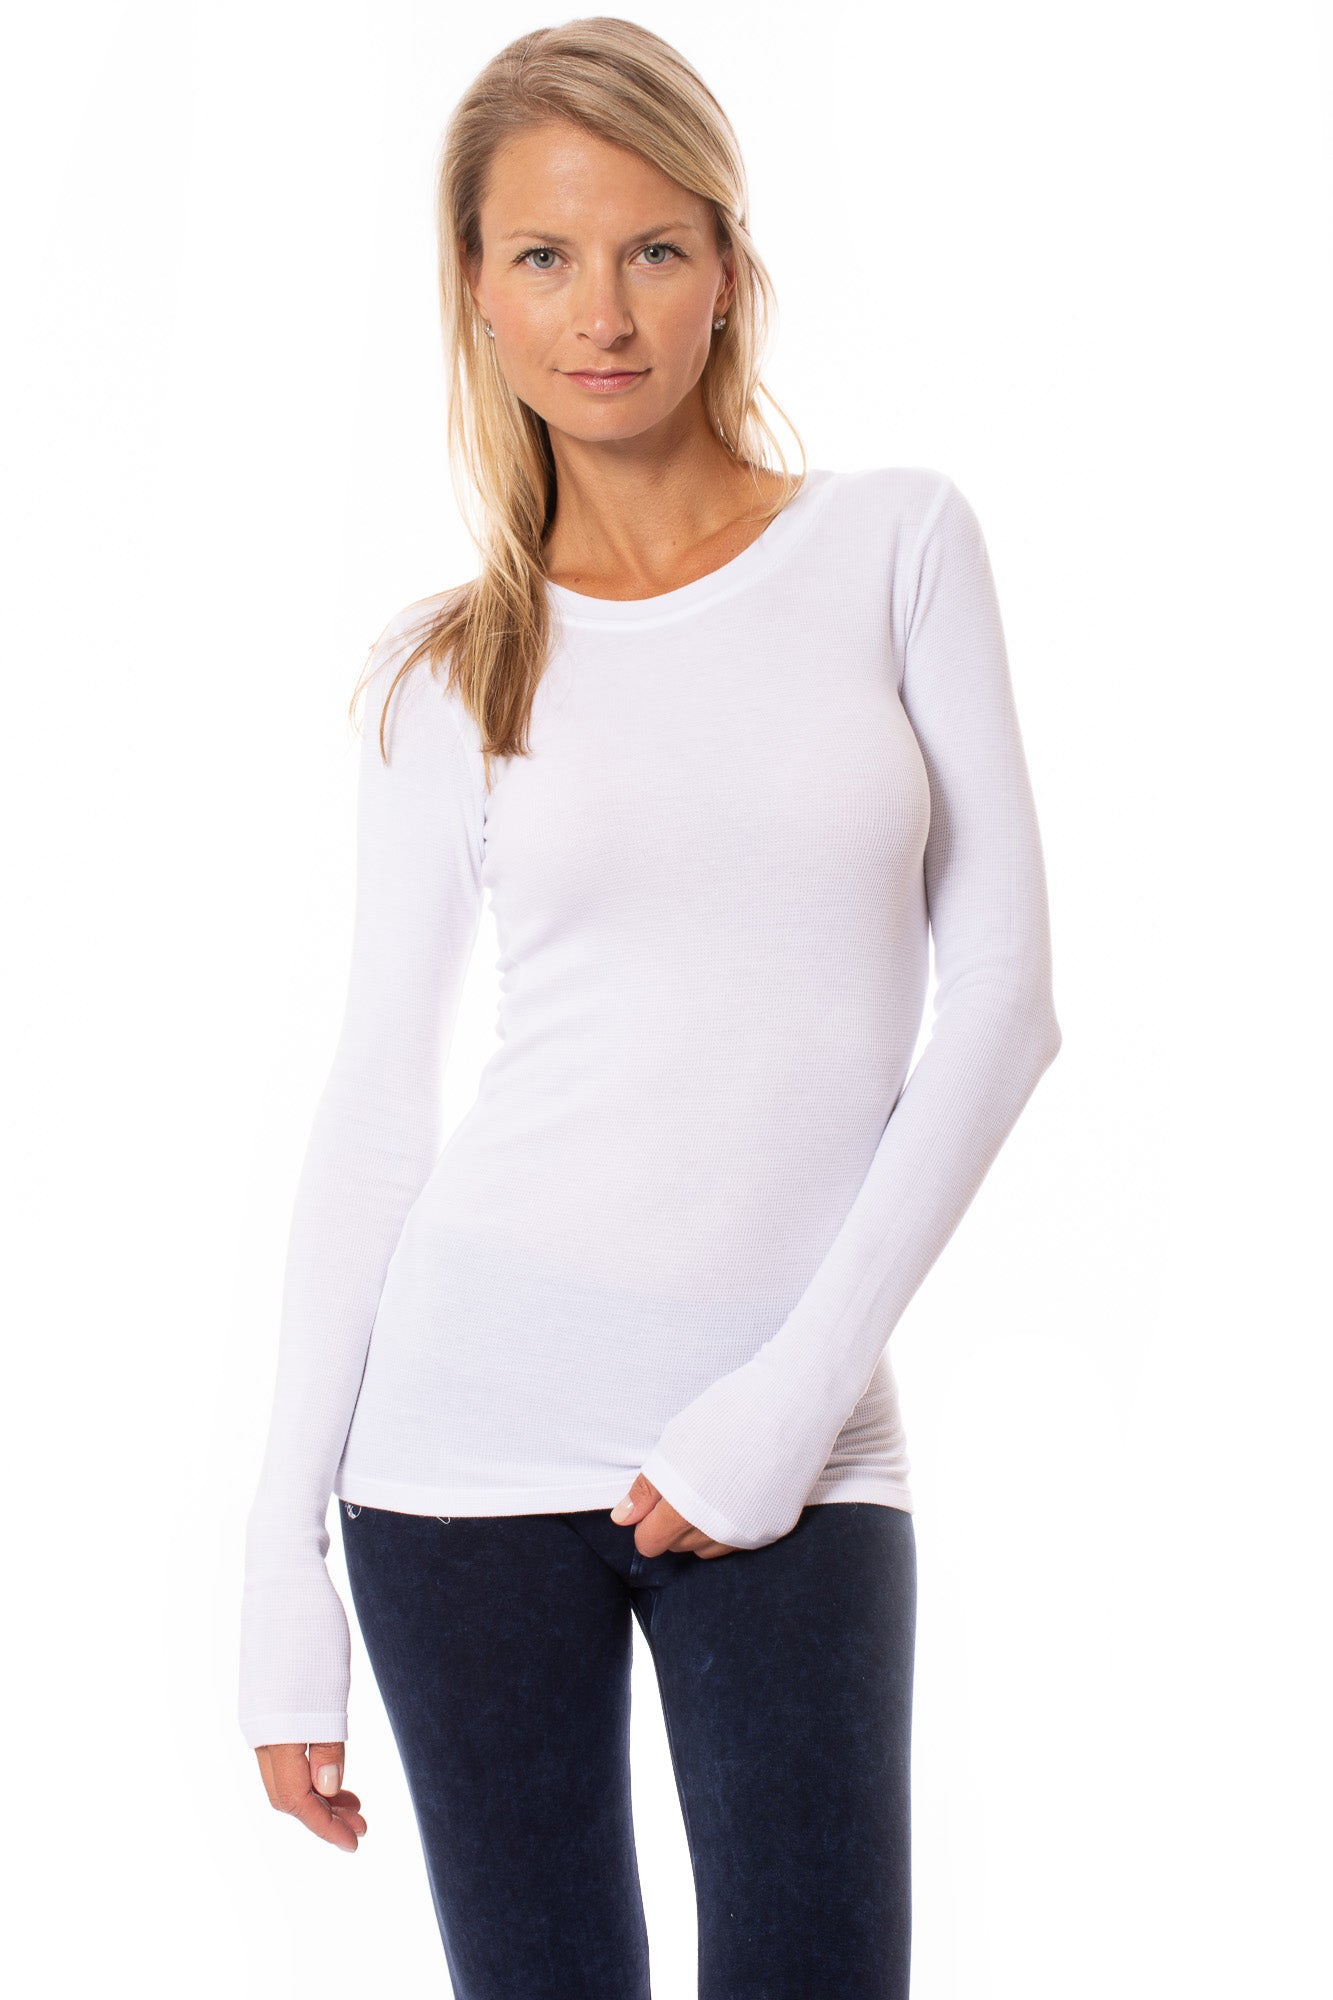 LA Made - Long Sleeve Thermal T (TH-100, White)